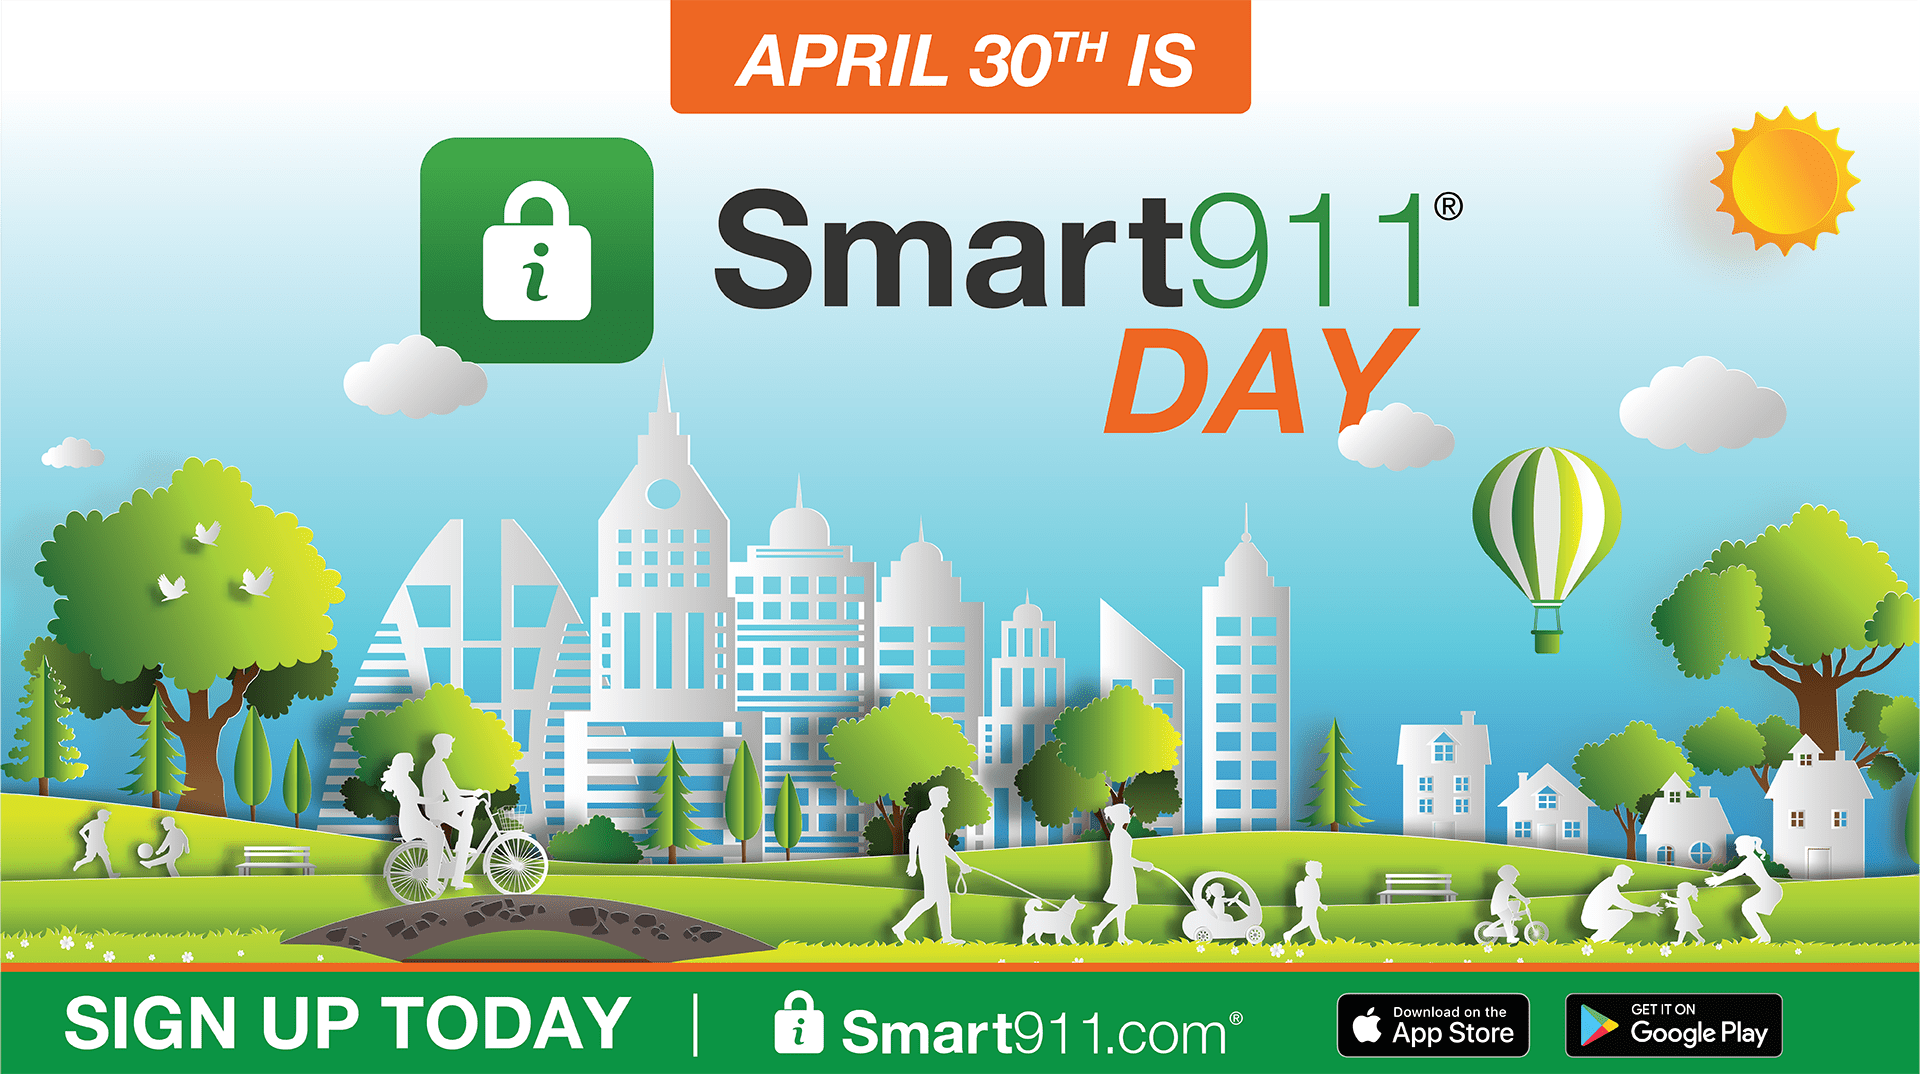 Smart911 Day